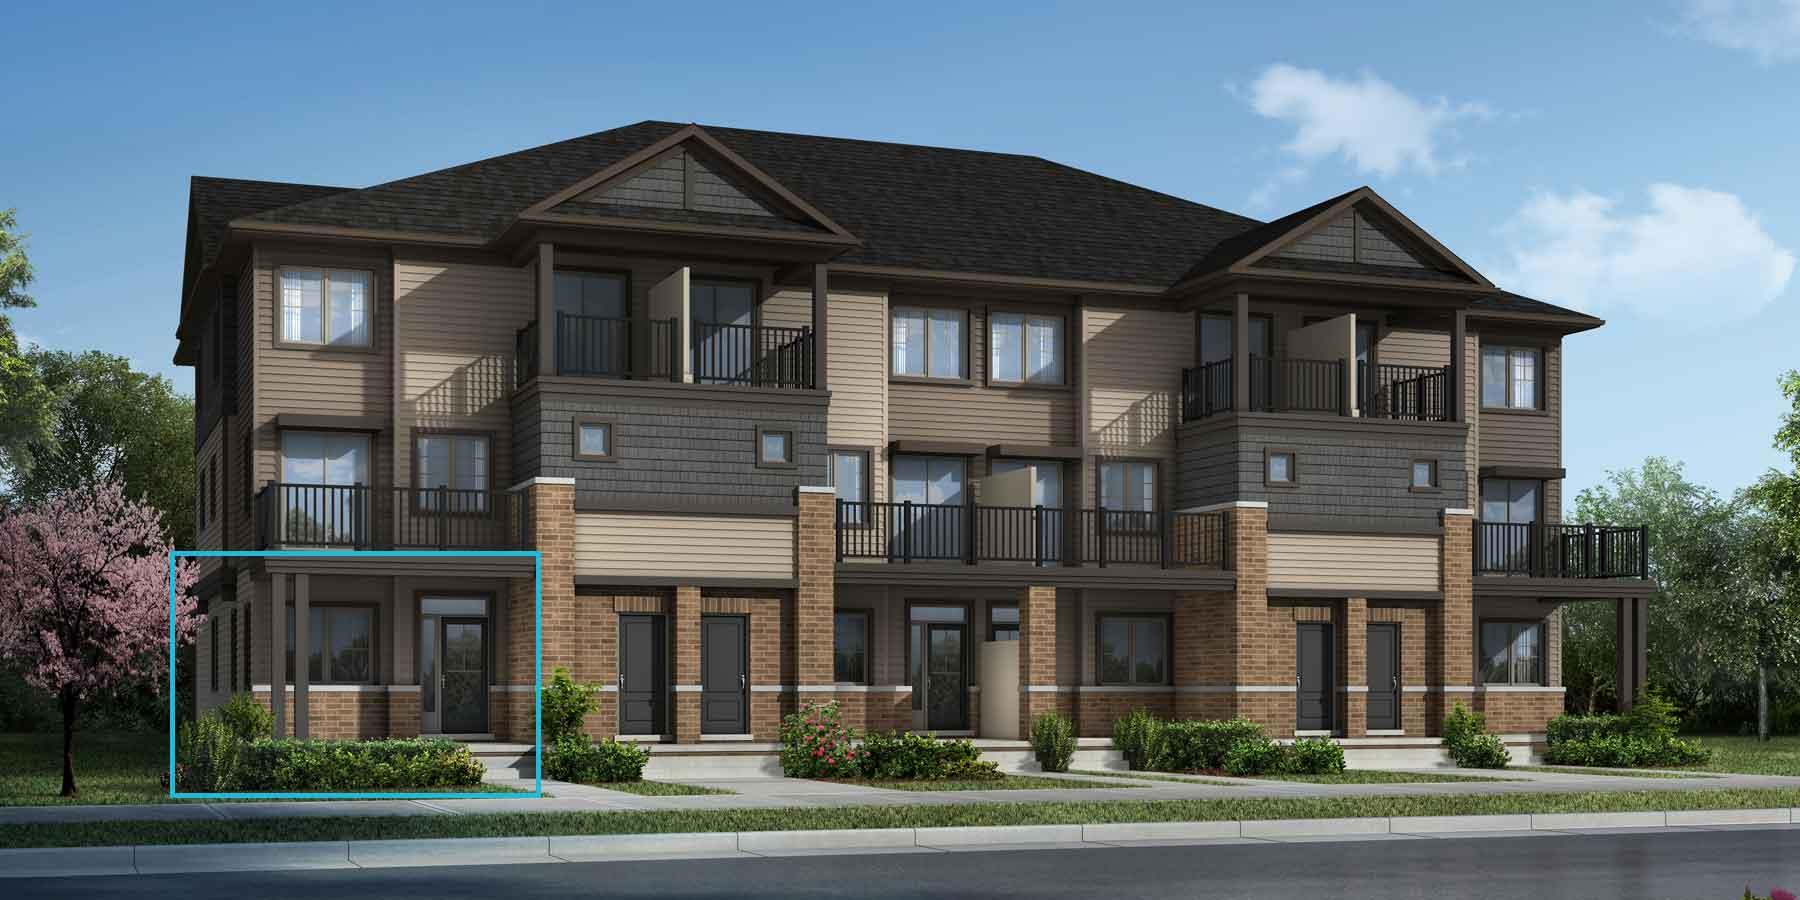 Promenade TownHomes in Barrhaven Ontario by Mattamy Homes